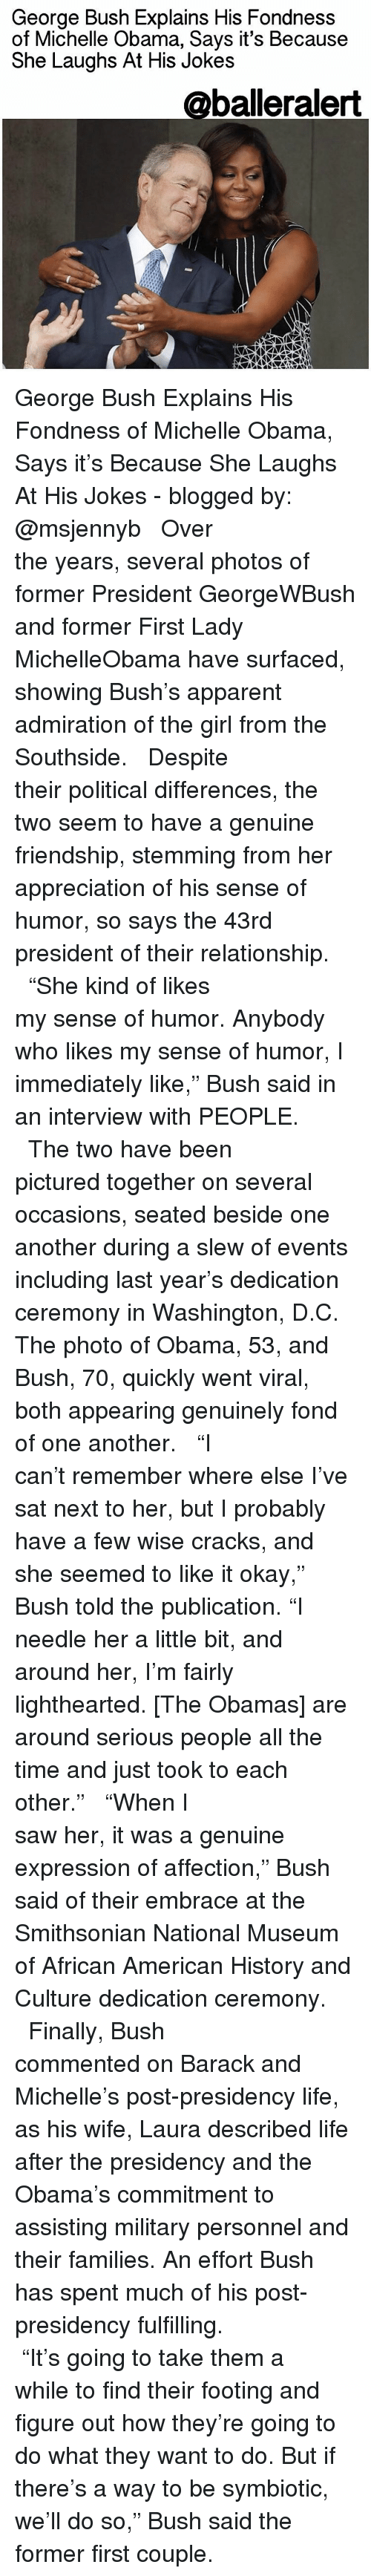 """Memes, Smithsonian, and 🤖: George Bush Explains His Fondness  of Michelle Obama, Says it's Because  She Laughs At His Jokes  @balleralert George Bush Explains His Fondness of Michelle Obama, Says it's Because She Laughs At His Jokes - blogged by: @msjennyb ⠀⠀⠀⠀⠀⠀⠀⠀⠀ ⠀⠀⠀⠀⠀⠀⠀⠀⠀ Over the years, several photos of former President GeorgeWBush and former First Lady MichelleObama have surfaced, showing Bush's apparent admiration of the girl from the Southside. ⠀⠀⠀⠀⠀⠀⠀⠀⠀ ⠀⠀⠀⠀⠀⠀⠀⠀⠀ Despite their political differences, the two seem to have a genuine friendship, stemming from her appreciation of his sense of humor, so says the 43rd president of their relationship. ⠀⠀⠀⠀⠀⠀⠀⠀⠀ ⠀⠀⠀⠀⠀⠀⠀⠀⠀ """"She kind of likes my sense of humor. Anybody who likes my sense of humor, I immediately like,"""" Bush said in an interview with PEOPLE. ⠀⠀⠀⠀⠀⠀⠀⠀⠀ ⠀⠀⠀⠀⠀⠀⠀⠀⠀ The two have been pictured together on several occasions, seated beside one another during a slew of events including last year's dedication ceremony in Washington, D.C. The photo of Obama, 53, and Bush, 70, quickly went viral, both appearing genuinely fond of one another. ⠀⠀⠀⠀⠀⠀⠀⠀⠀ ⠀⠀⠀⠀⠀⠀⠀⠀⠀ """"I can't remember where else I've sat next to her, but I probably have a few wise cracks, and she seemed to like it okay,"""" Bush told the publication. """"I needle her a little bit, and around her, I'm fairly lighthearted. [The Obamas] are around serious people all the time and just took to each other."""" ⠀⠀⠀⠀⠀⠀⠀⠀⠀ ⠀⠀⠀⠀⠀⠀⠀⠀⠀ """"When I saw her, it was a genuine expression of affection,"""" Bush said of their embrace at the Smithsonian National Museum of African American History and Culture dedication ceremony. ⠀⠀⠀⠀⠀⠀⠀⠀⠀ ⠀⠀⠀⠀⠀⠀⠀⠀⠀ Finally, Bush commented on Barack and Michelle's post-presidency life, as his wife, Laura described life after the presidency and the Obama's commitment to assisting military personnel and their families. An effort Bush has spent much of his post-presidency fulfilling. ⠀⠀⠀⠀⠀⠀⠀⠀⠀ ⠀⠀⠀⠀⠀⠀⠀⠀⠀ """"It's going to take them a while to find their footing """